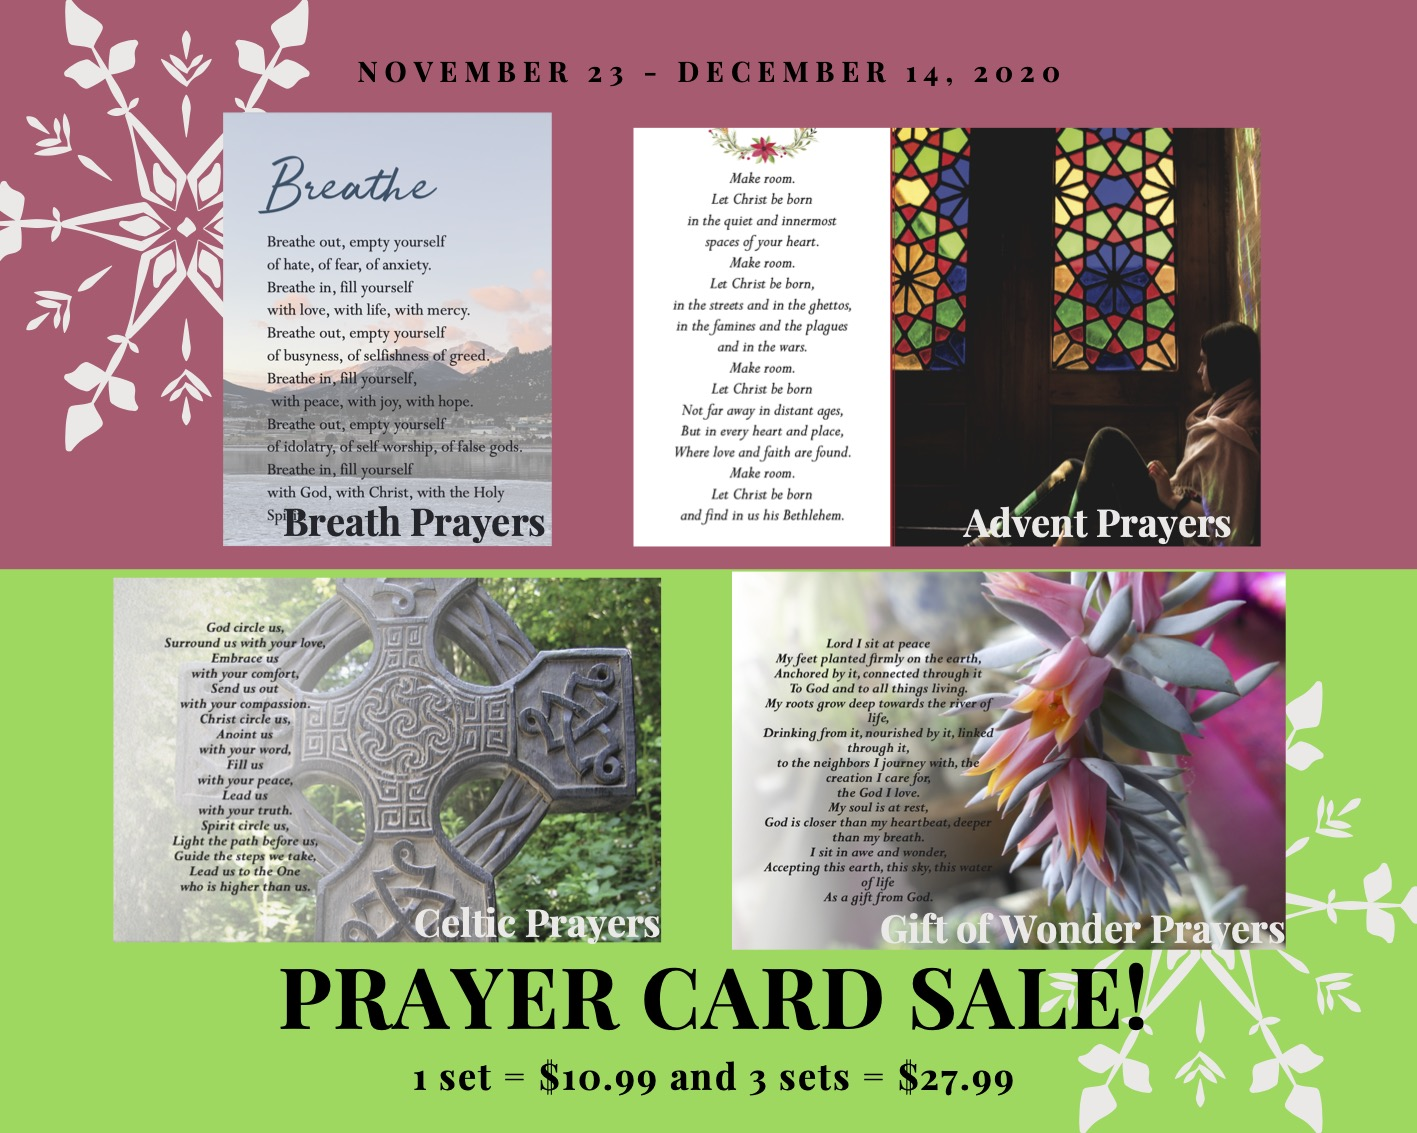 Prayer Card sale